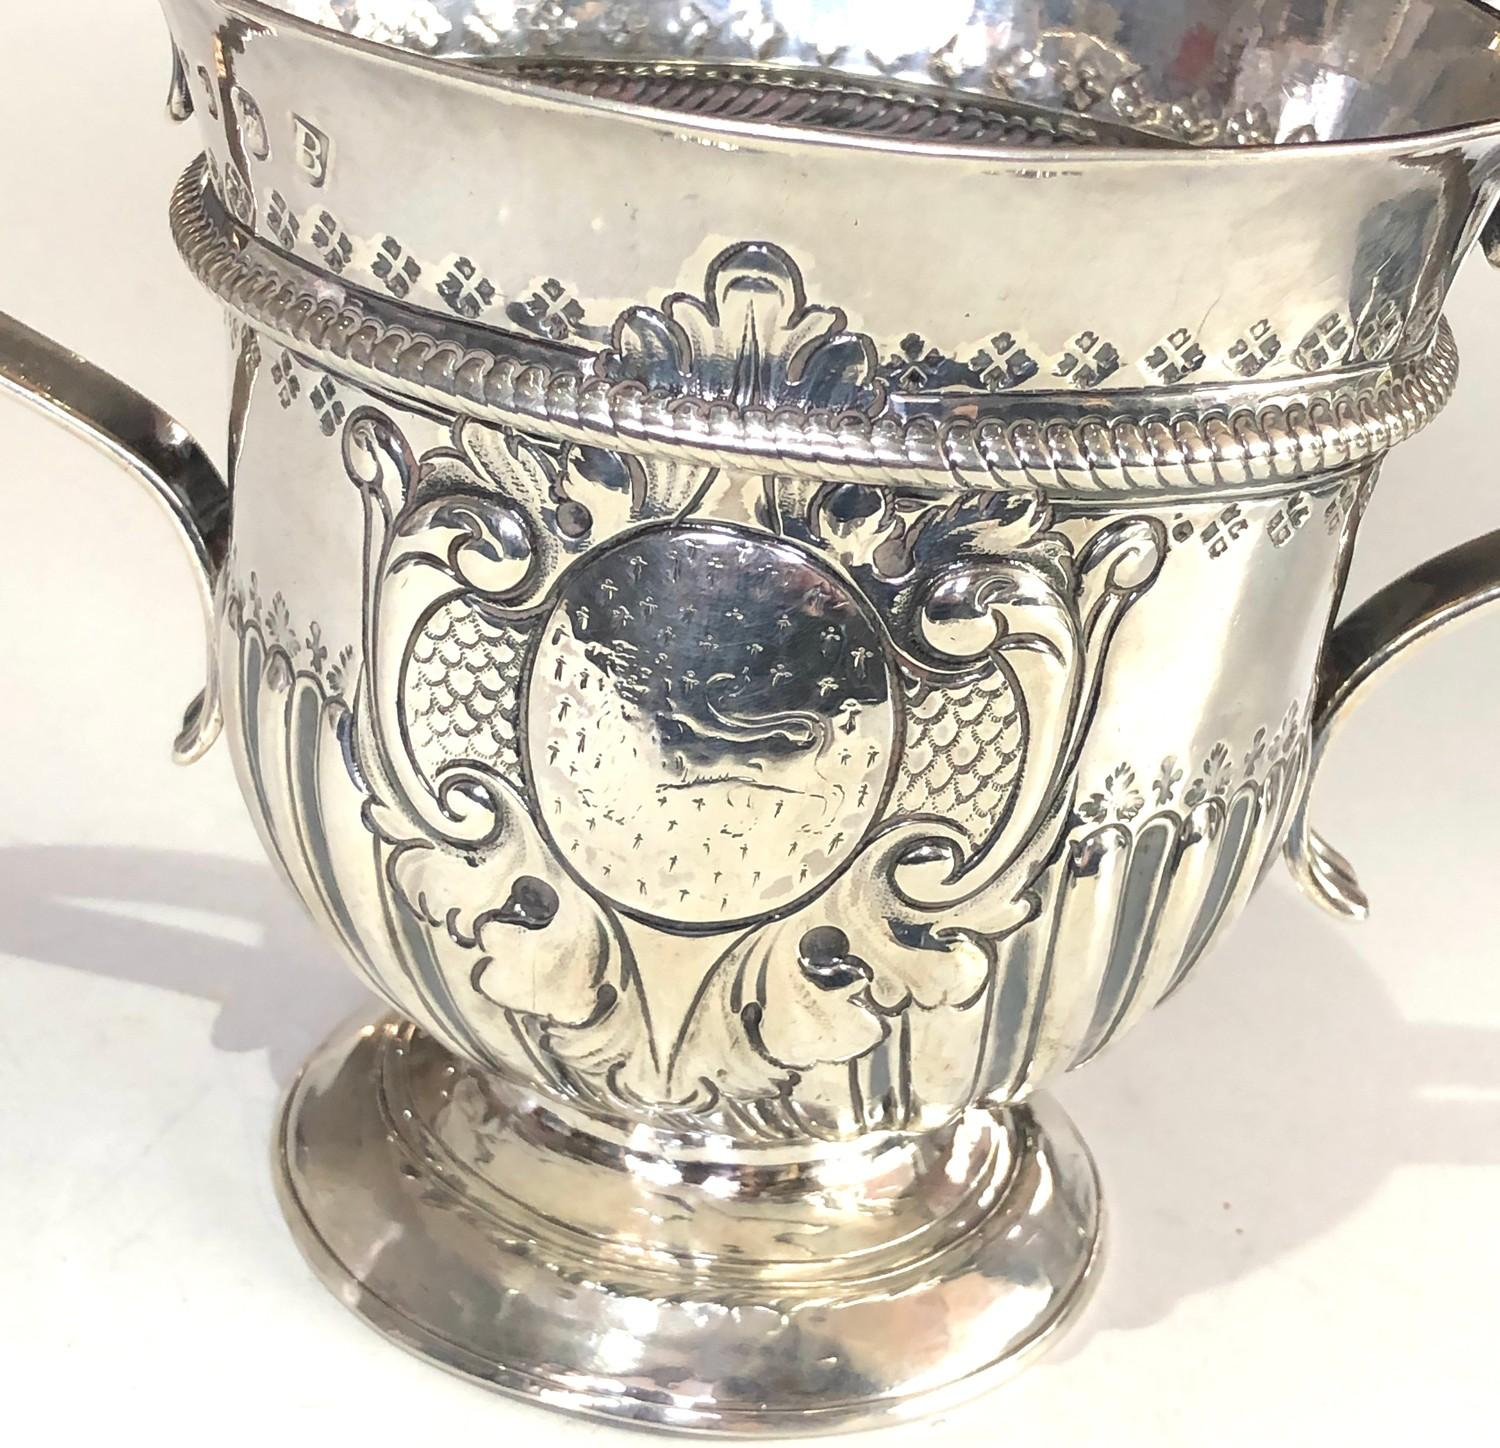 Rare George 1 silver Porringer full london silver hallmarks date letter B for 1717 measures approx - Image 6 of 9